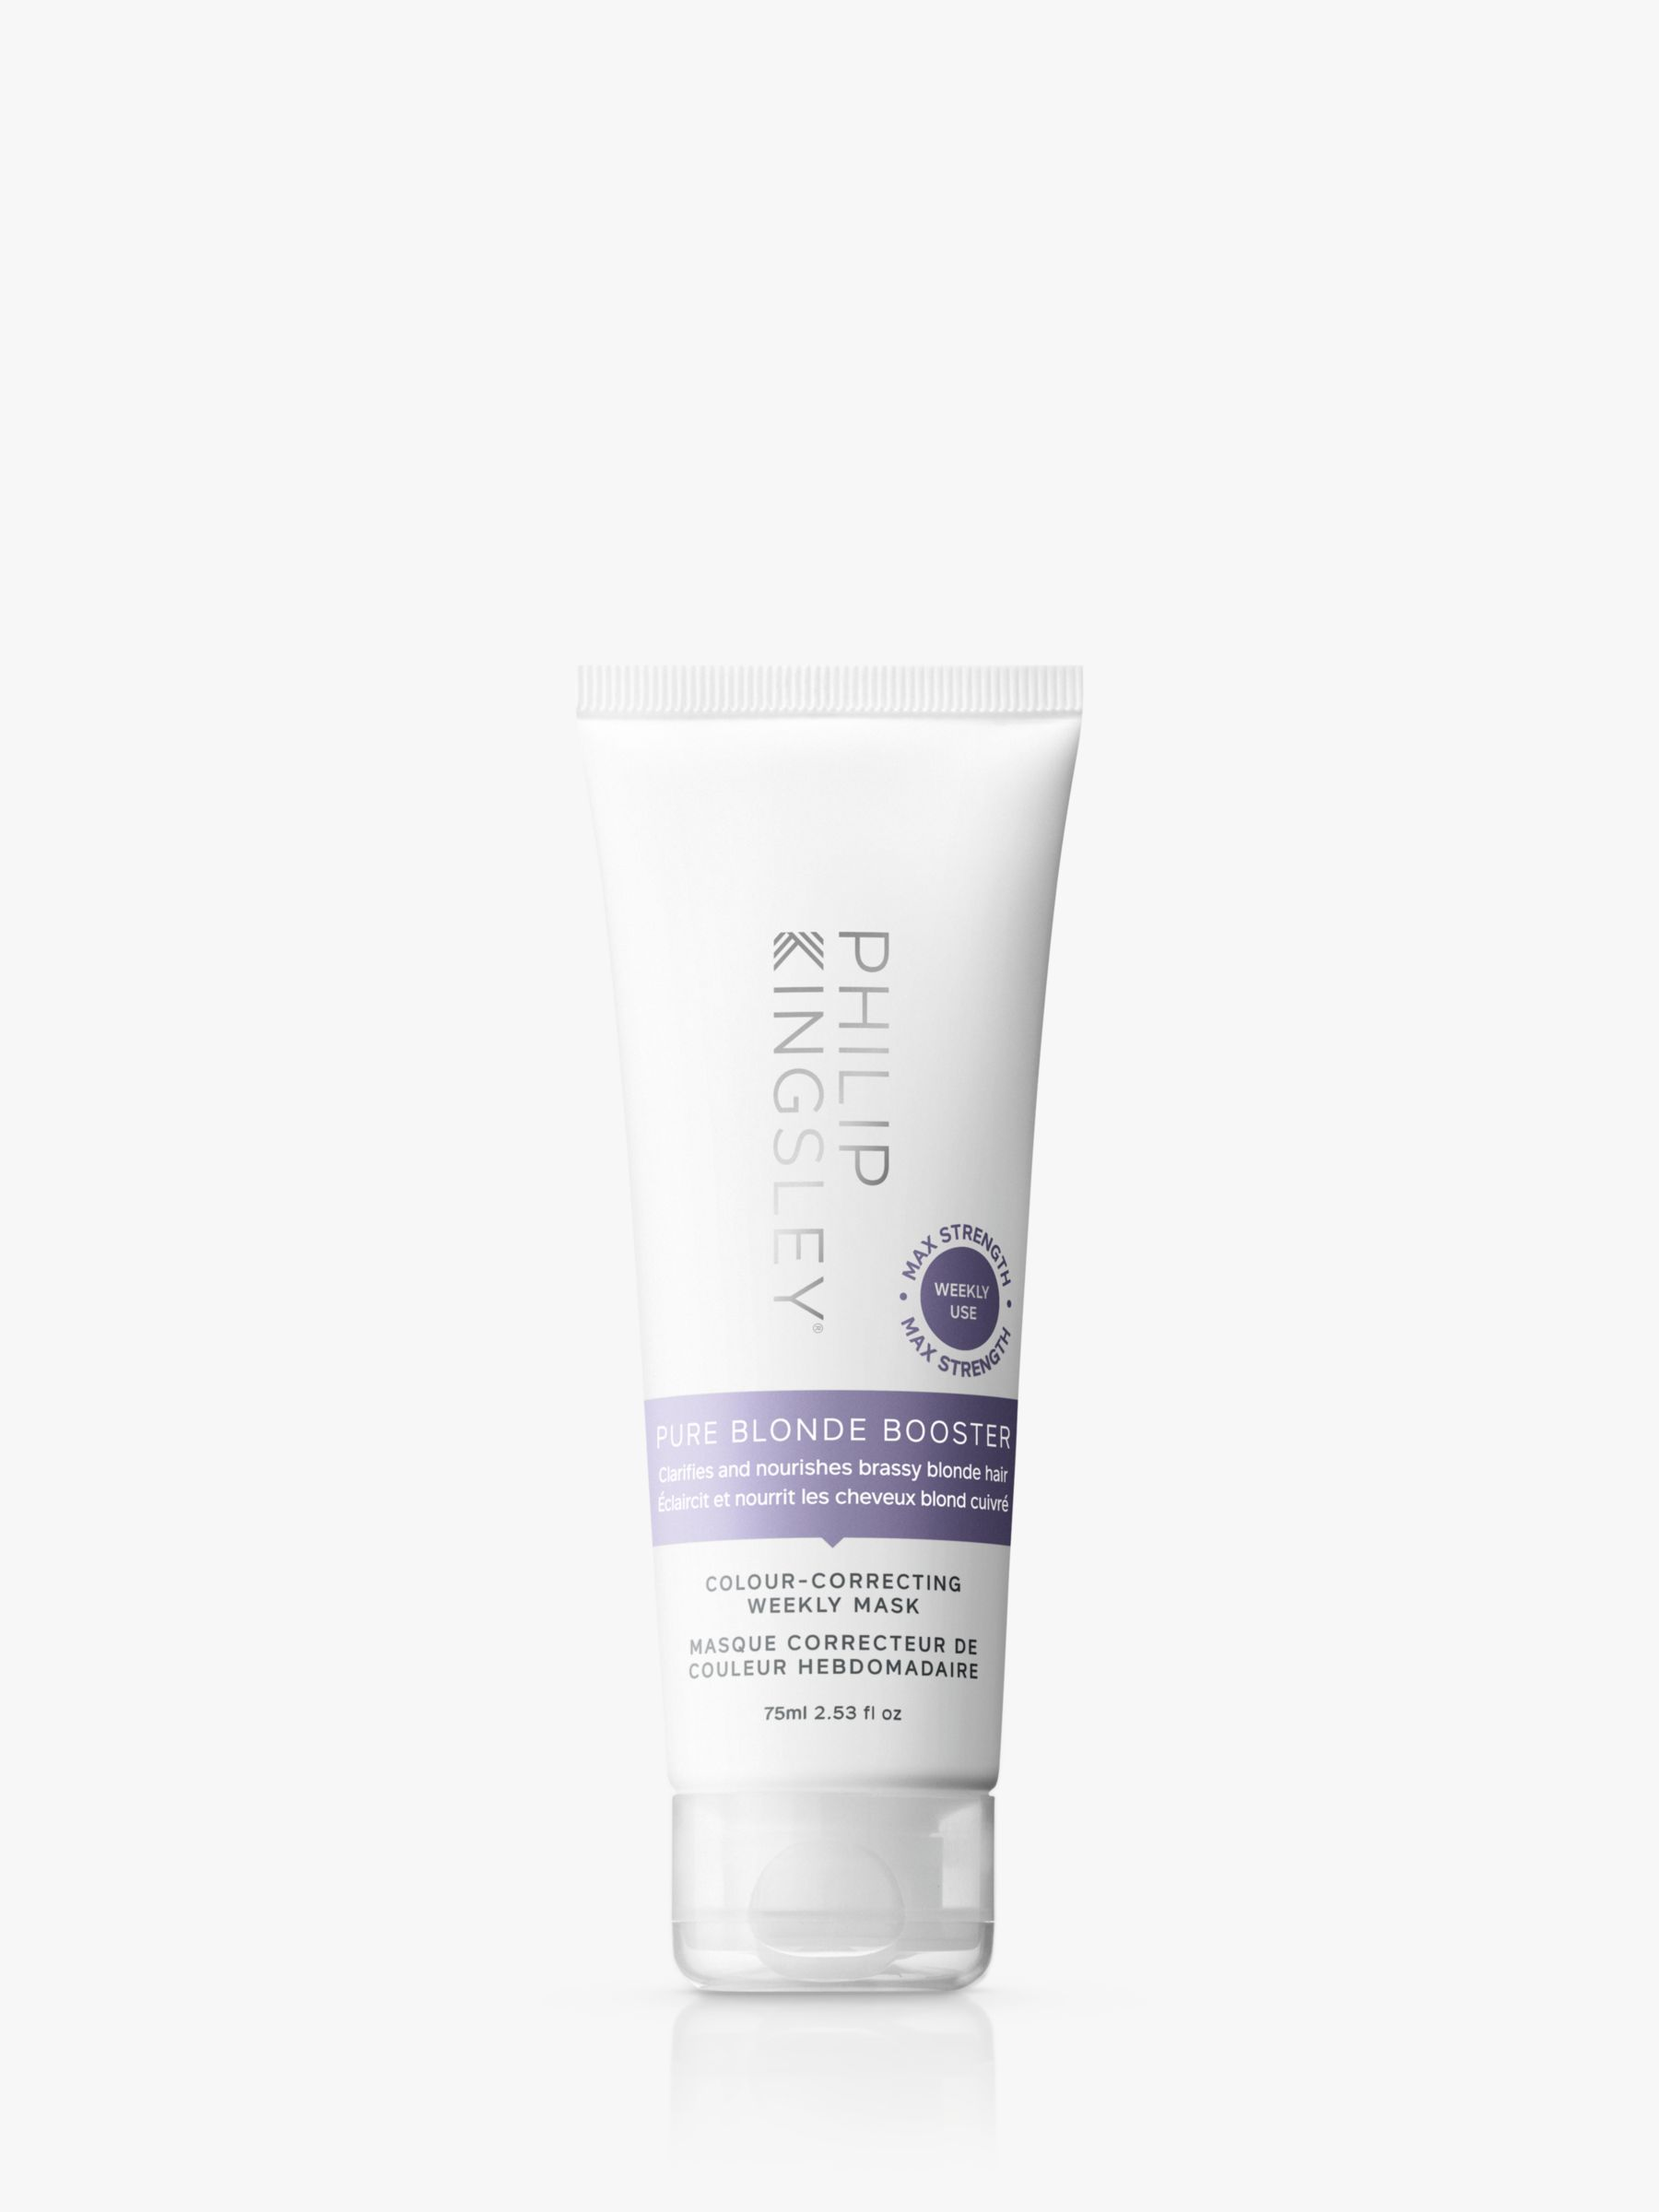 Philip Kingsley Philip Kingsley Pure Blonde Booster Colour-Correcting Weekly Mask